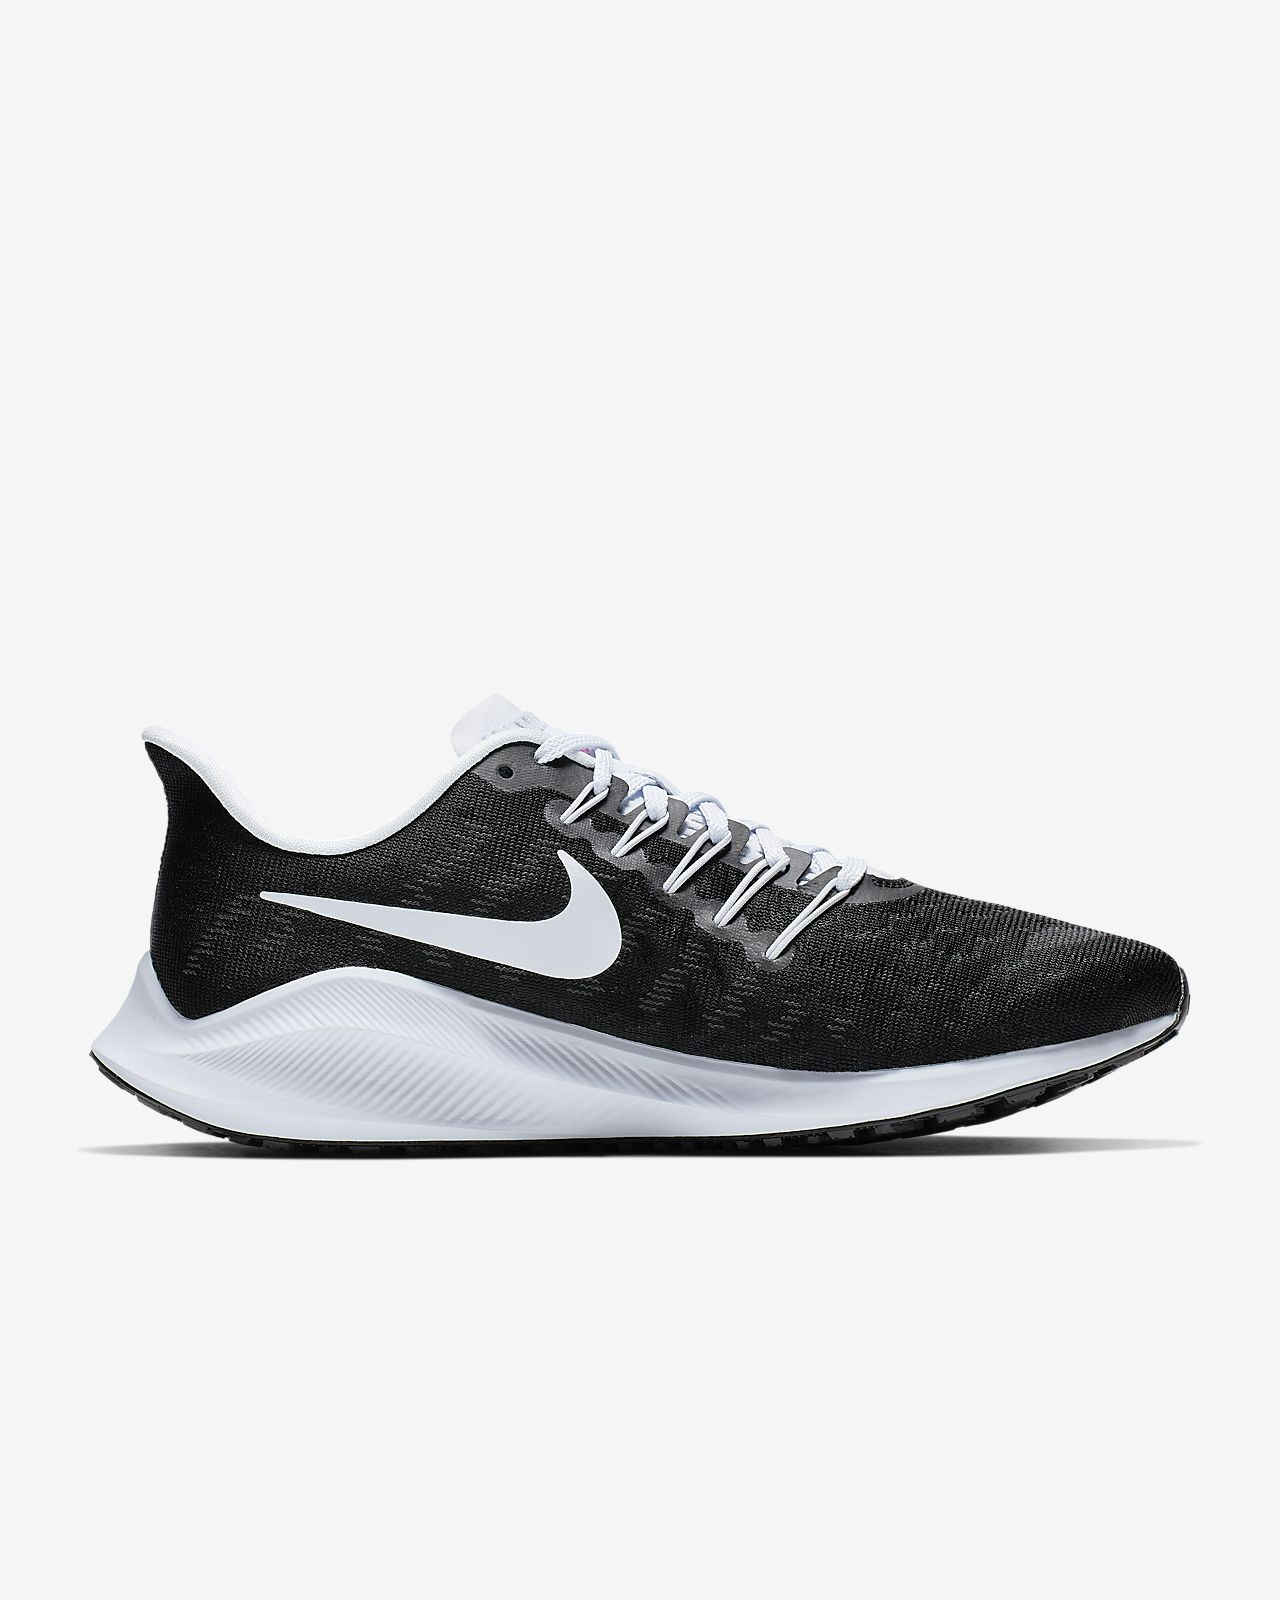 f0ee1323843d0 Nike Air Zoom Vomero 14 Women s Running Shoe. Nike.com PT